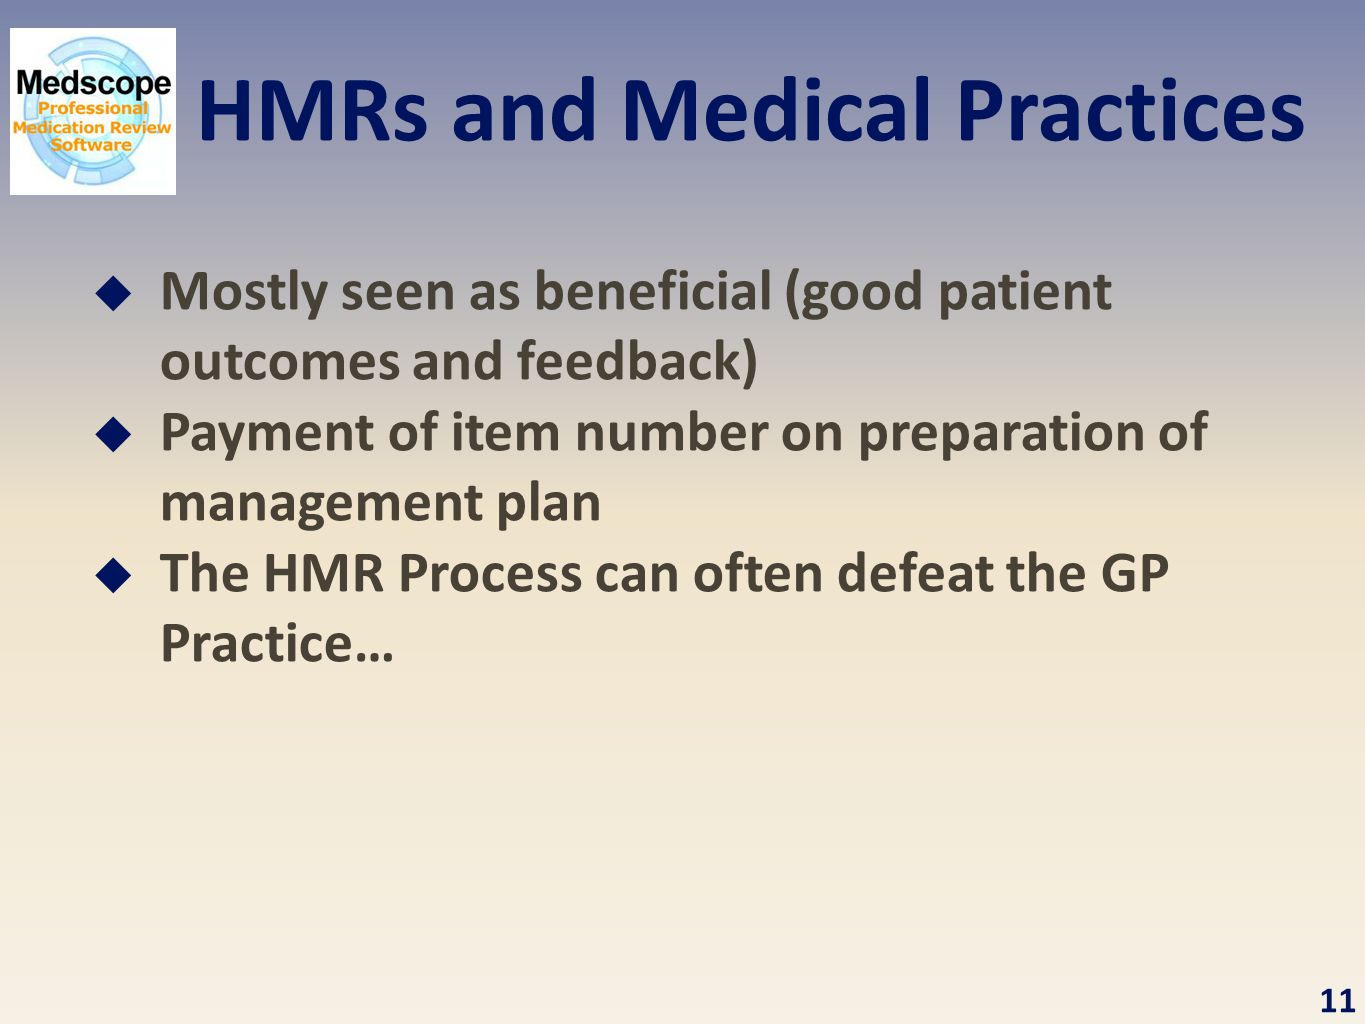 HMRs and Medical Practices